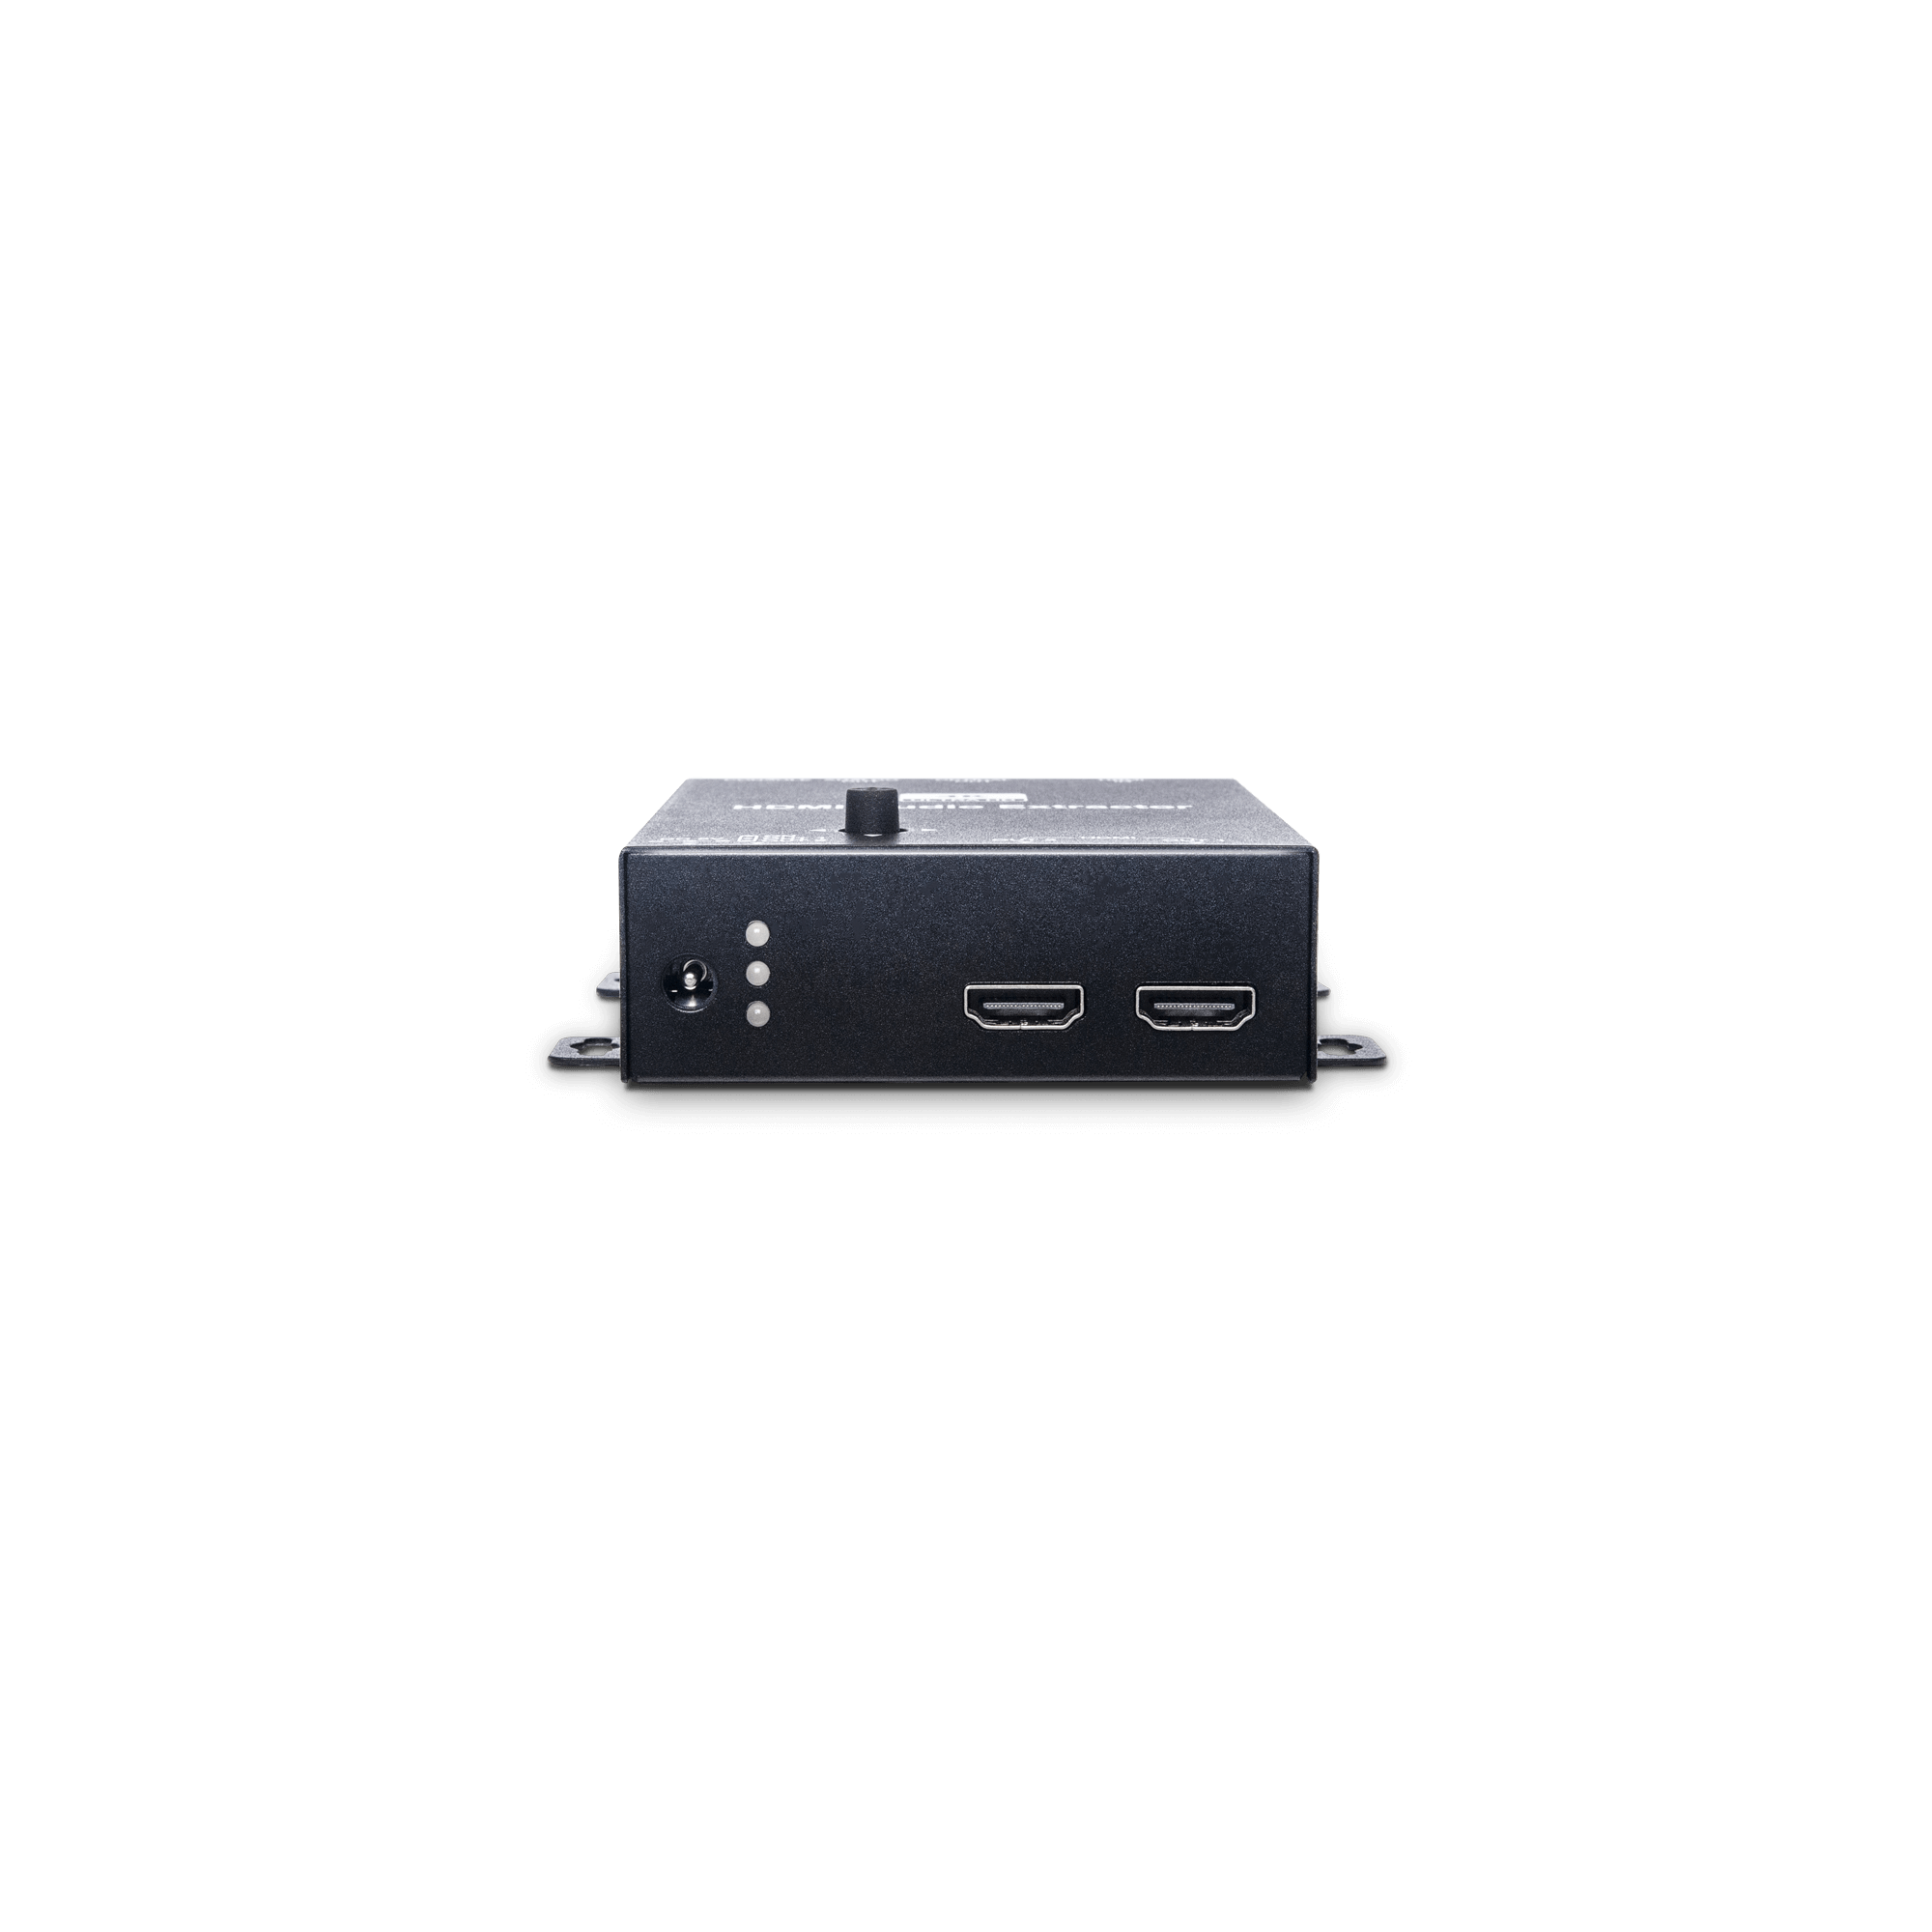 4K60Hz HDMI Audio Extractor with Up/down Scaler